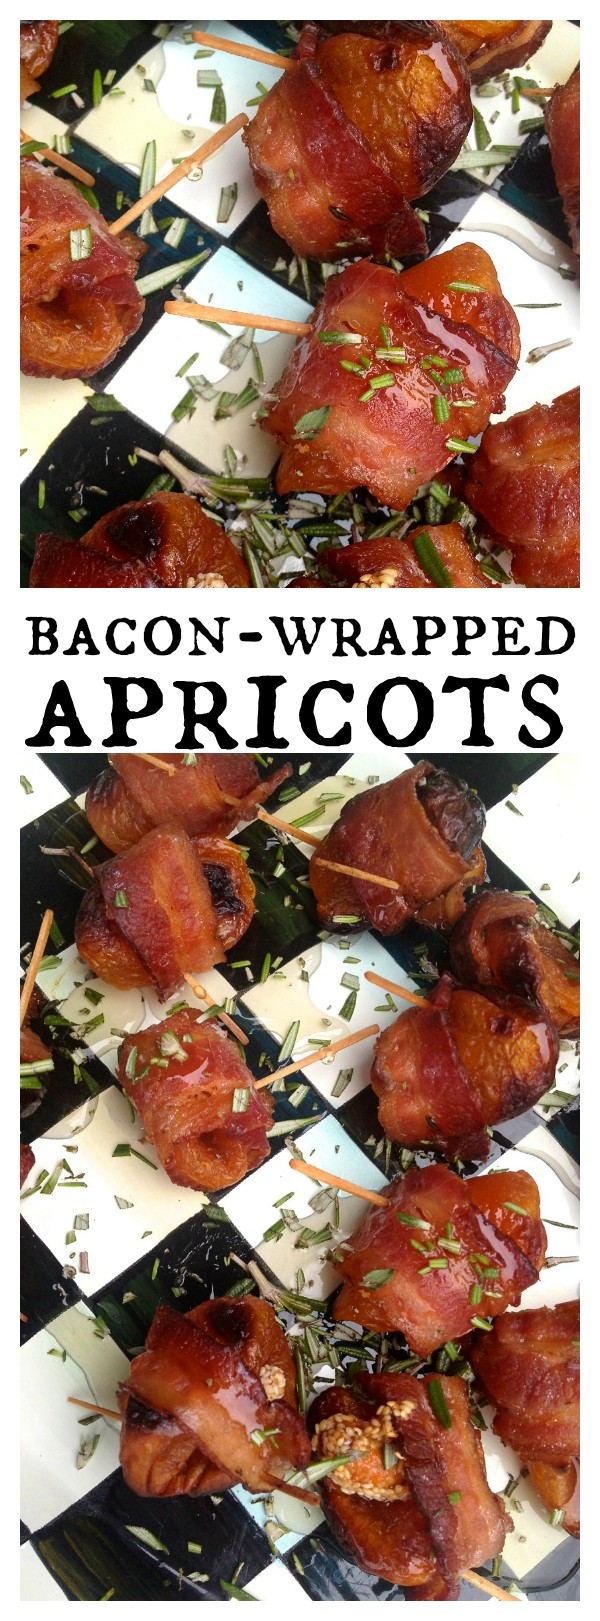 Bacon Wrapped Apricots with Honey & Rosemary Recipe